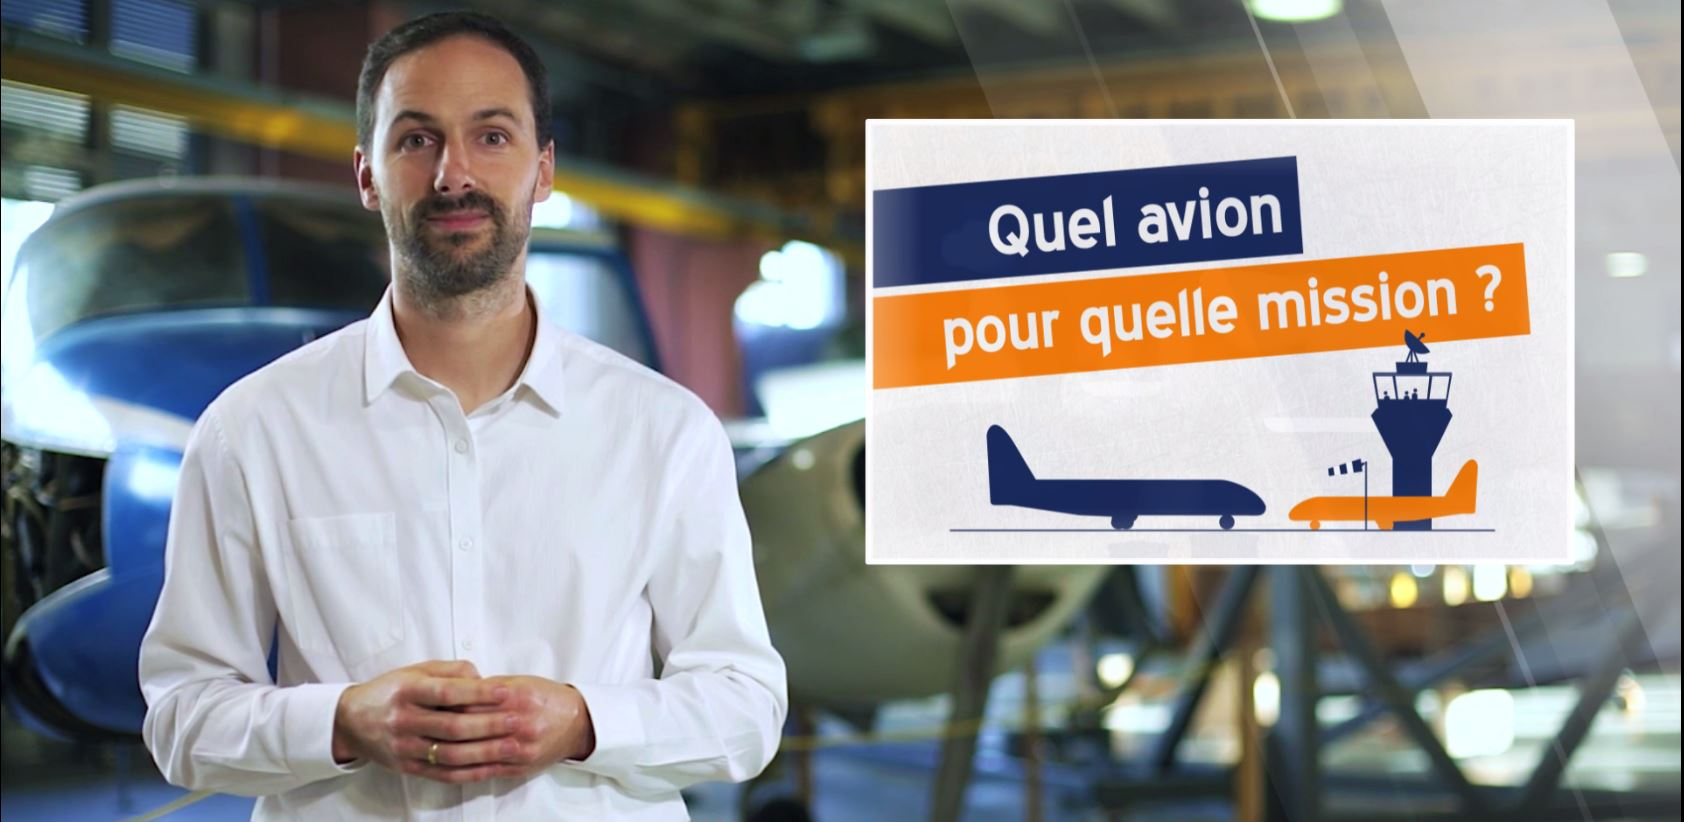 MOOC ENAC - Quel avion pour quelle mission